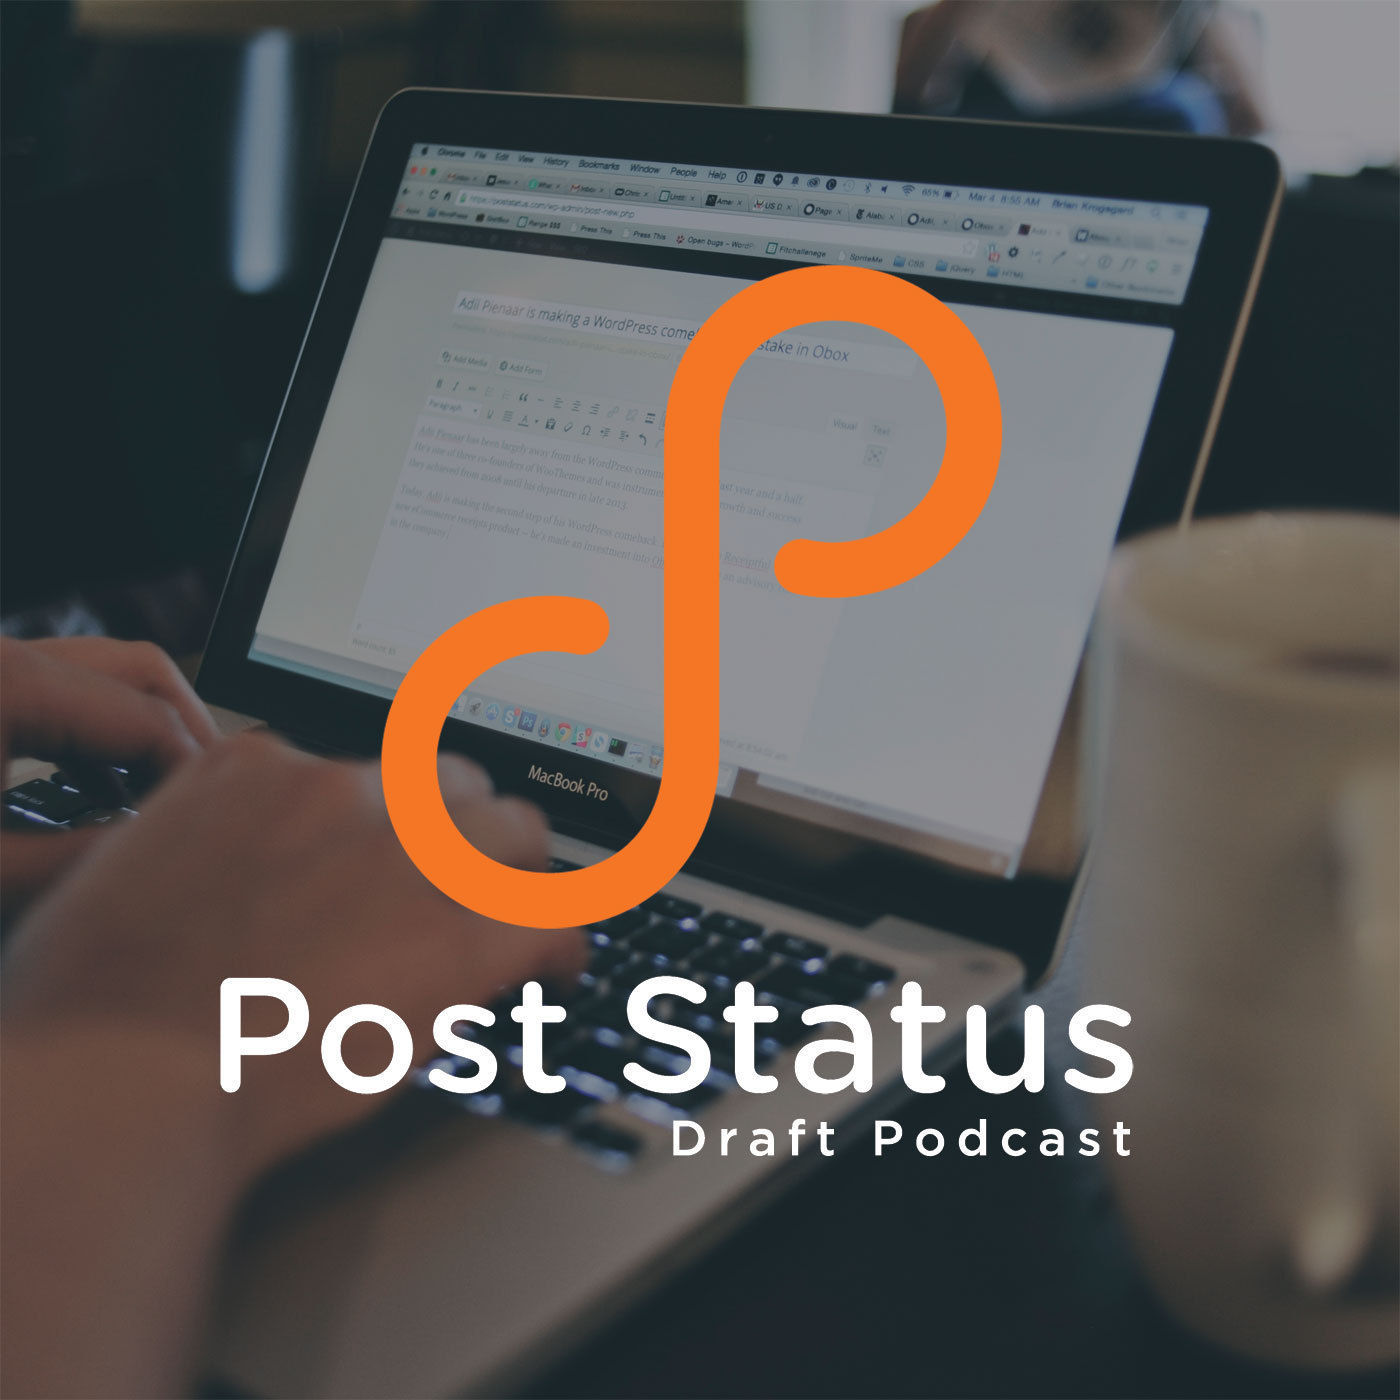 WordPress | Post Status Draft Podcast